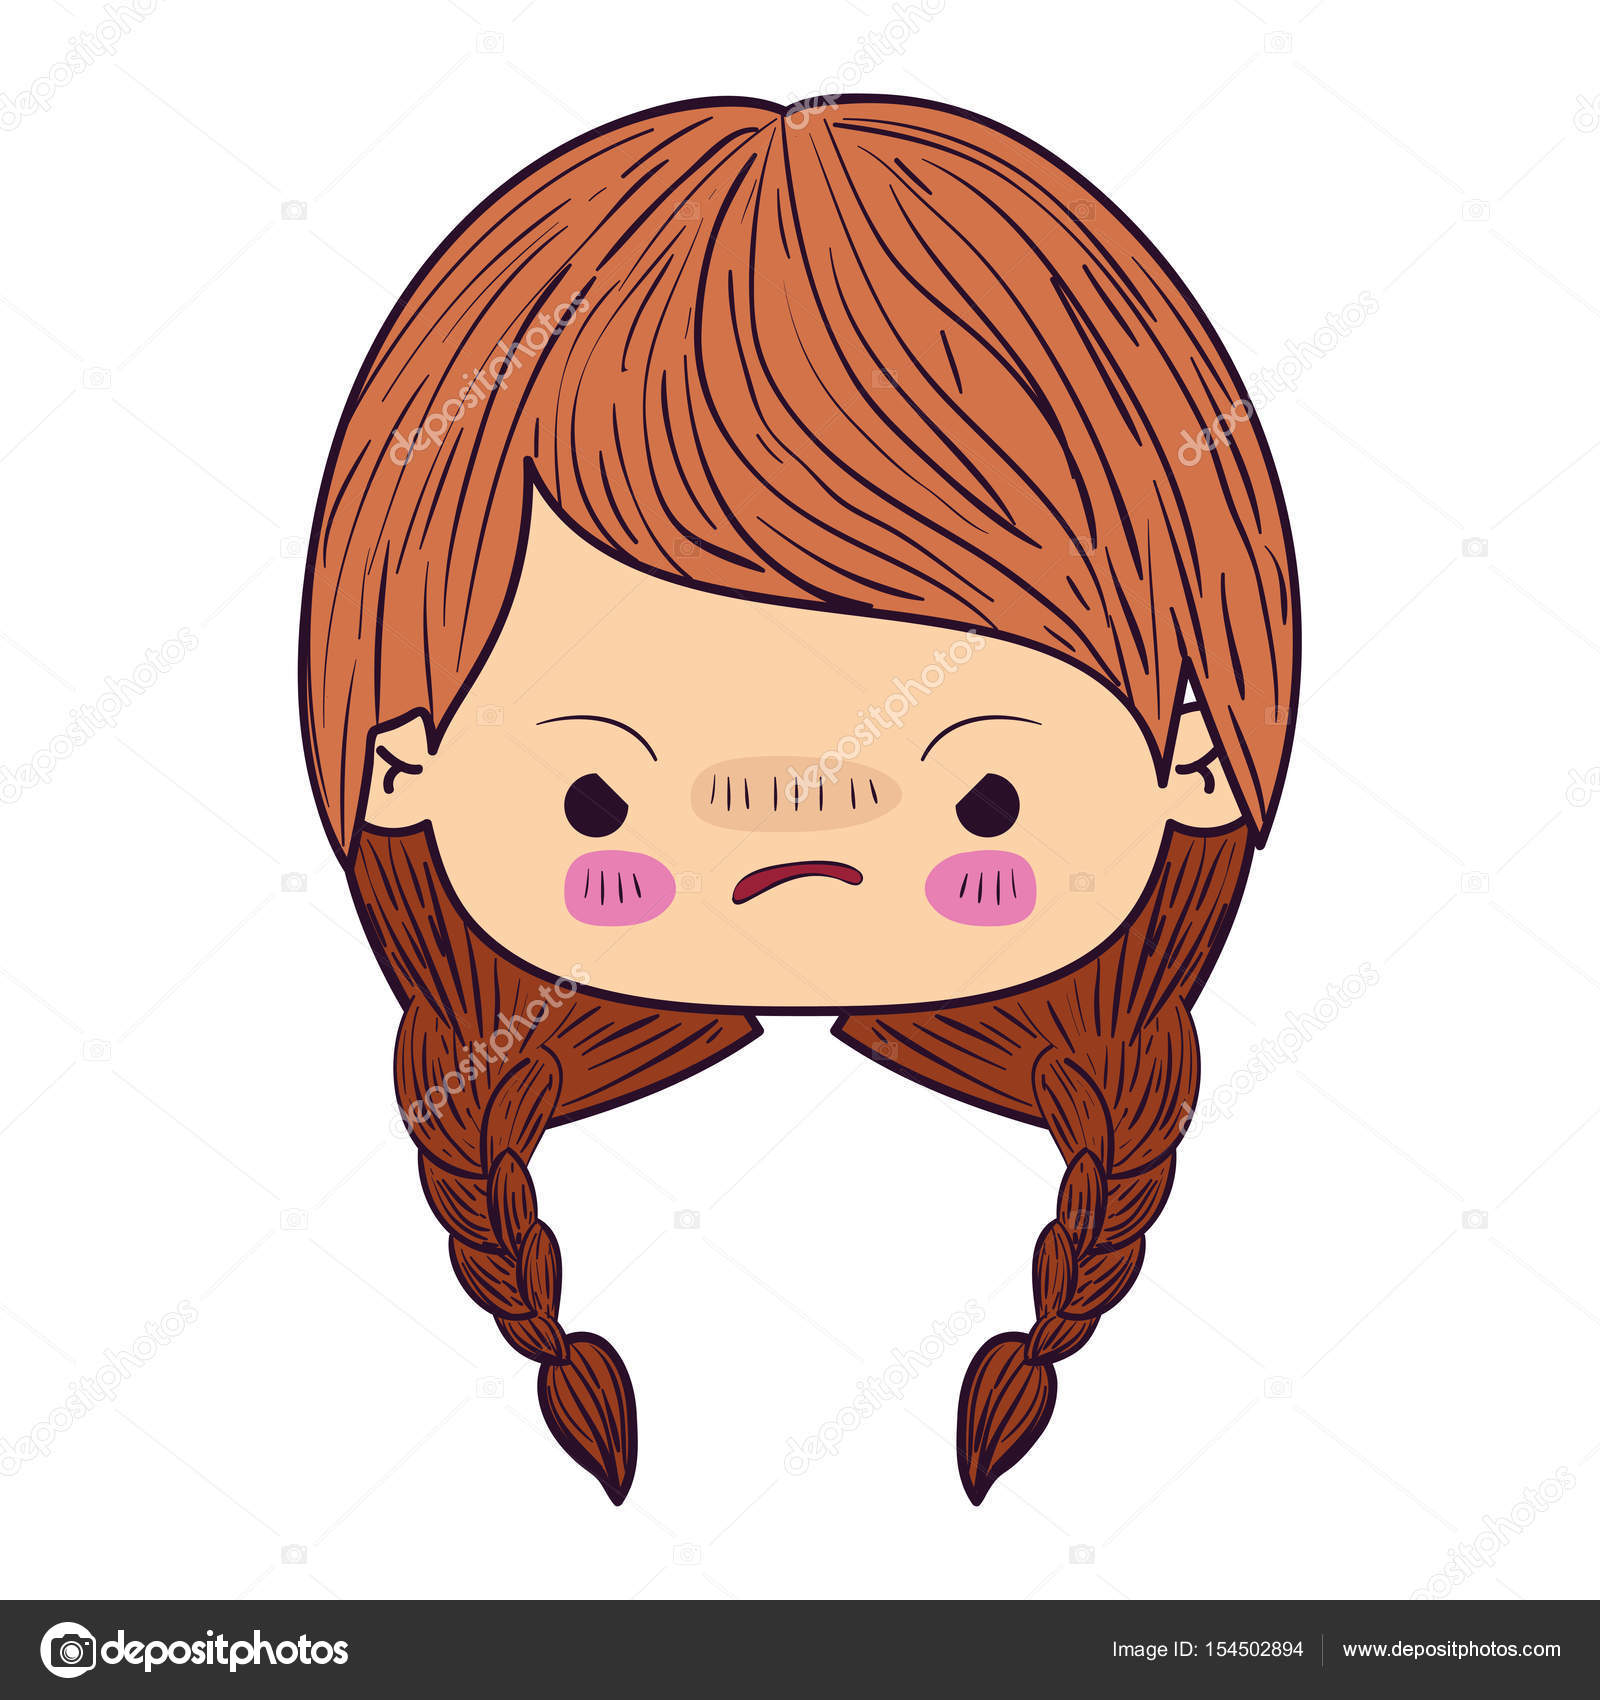 depositphotos_154502894 stock illustration colorful caricature kawaii face little